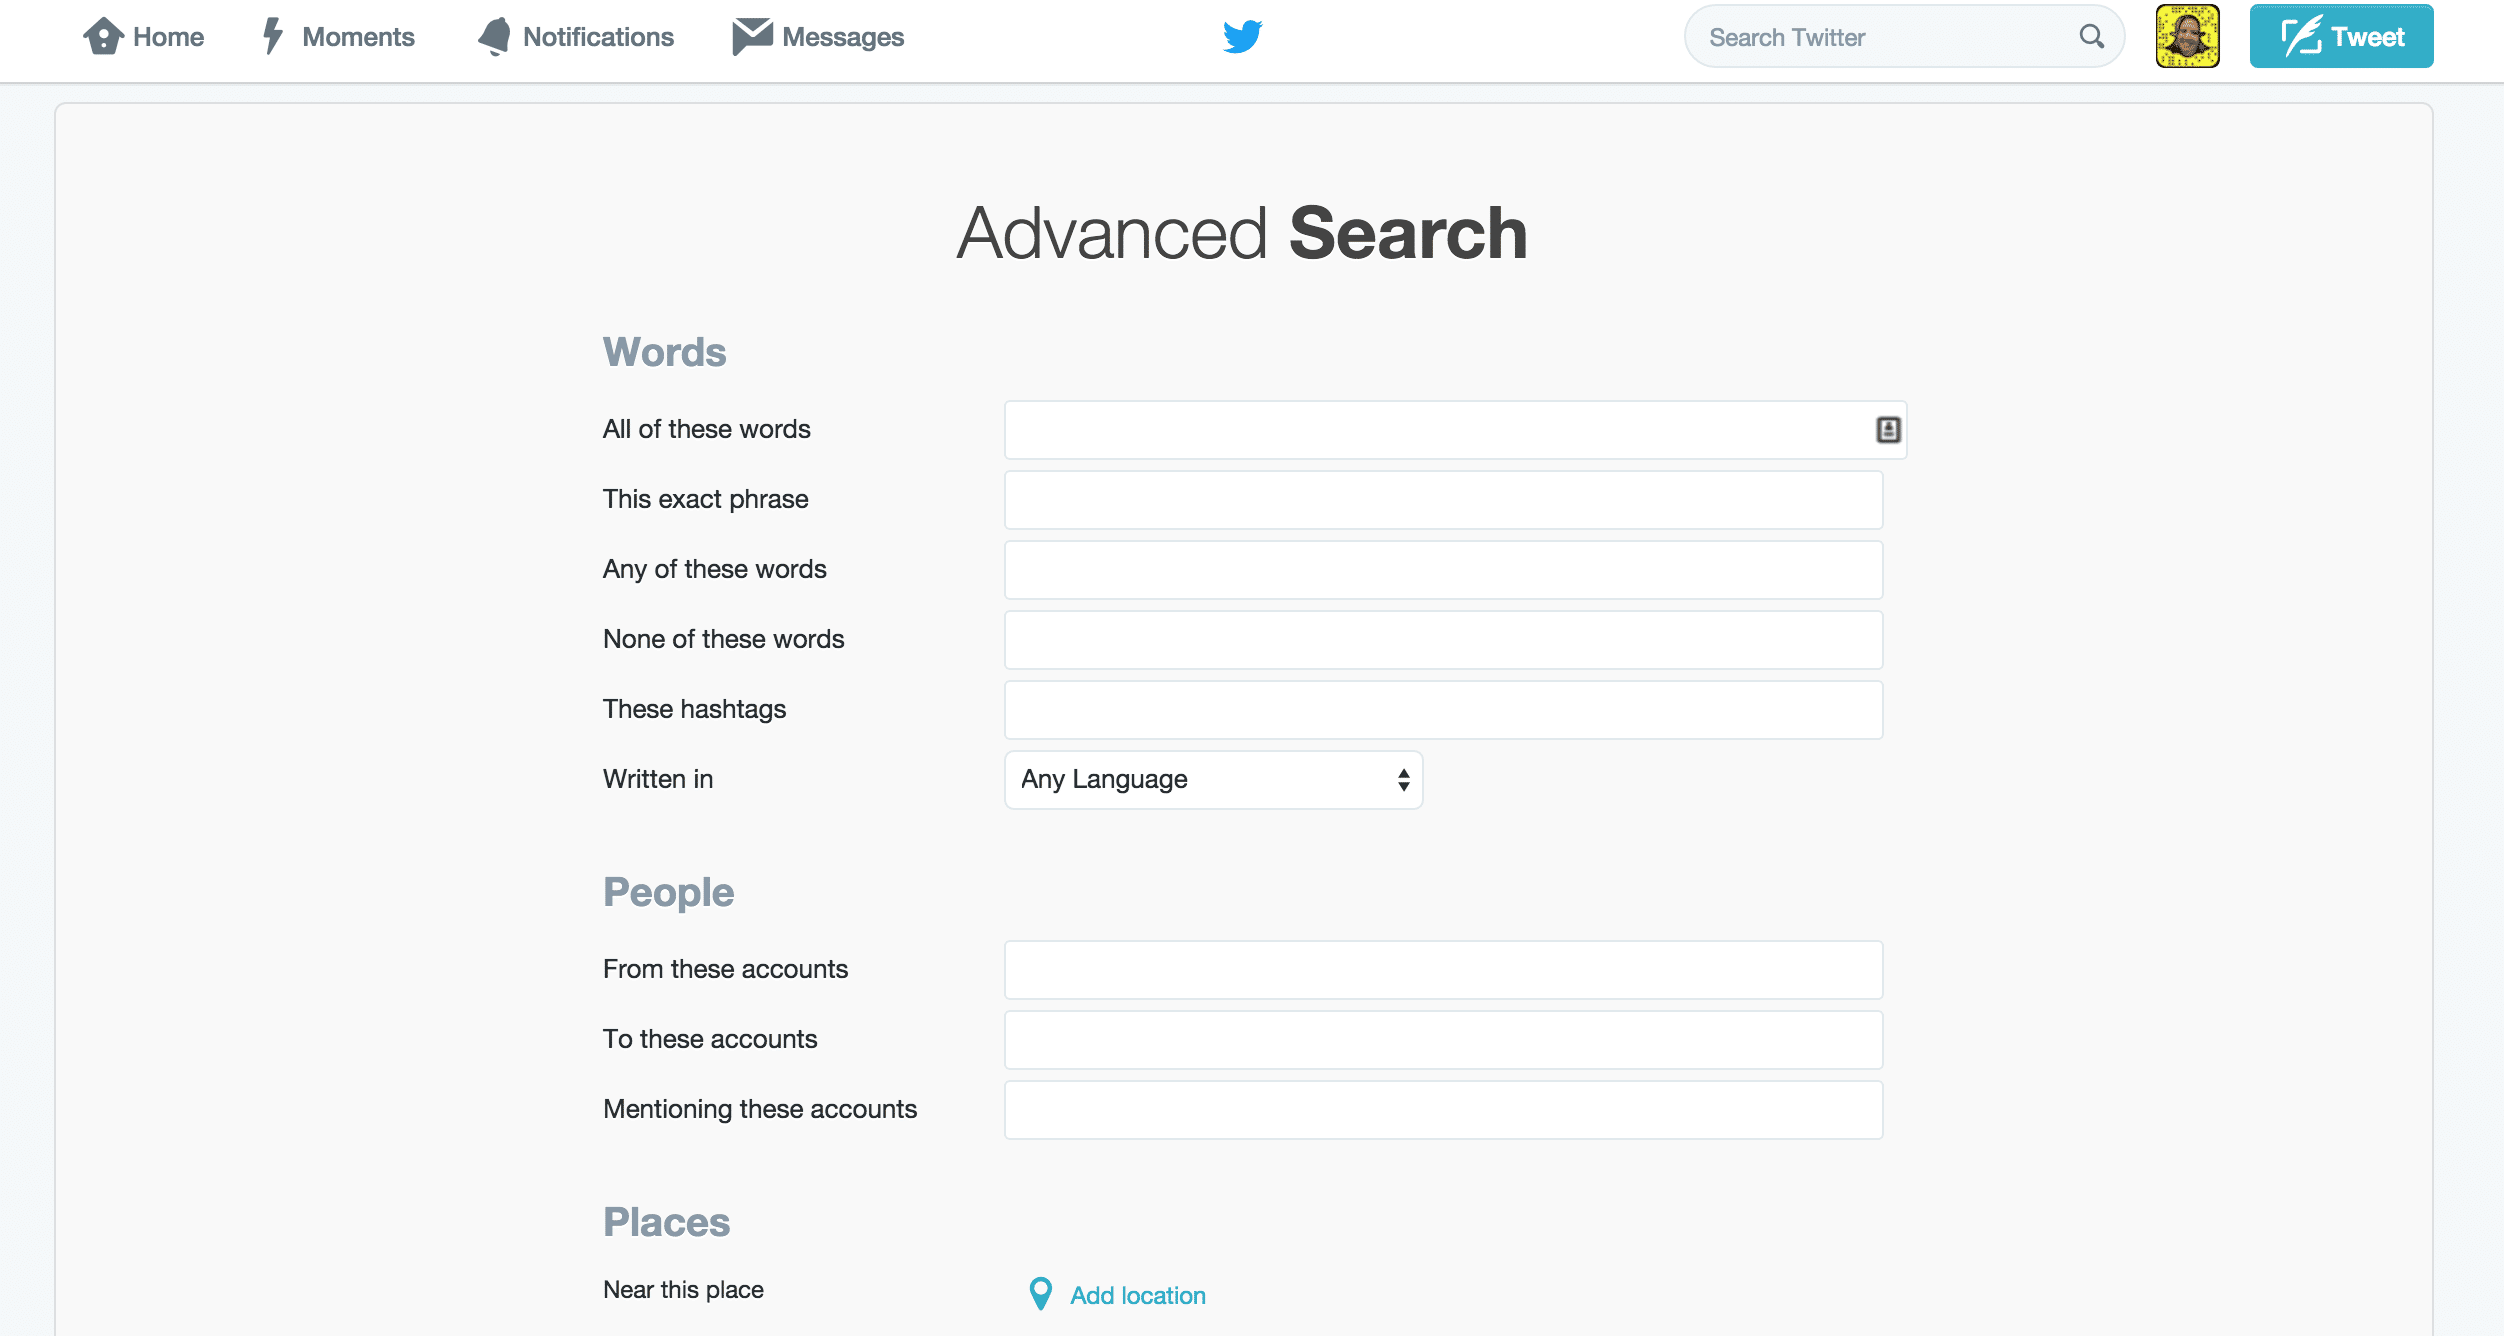 The Advanced Search function is an awesome, yet underutilized tool.